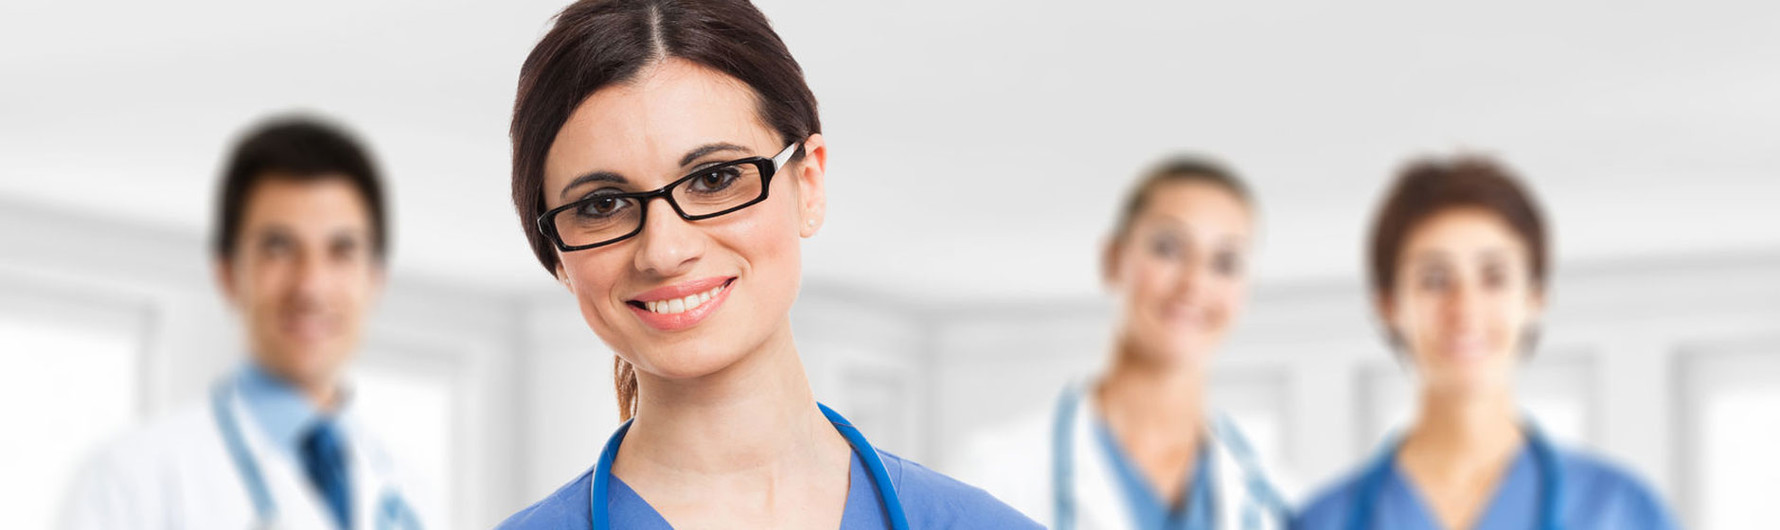 Become a Certified Rehabilitation Registered Nurse (CRRN)